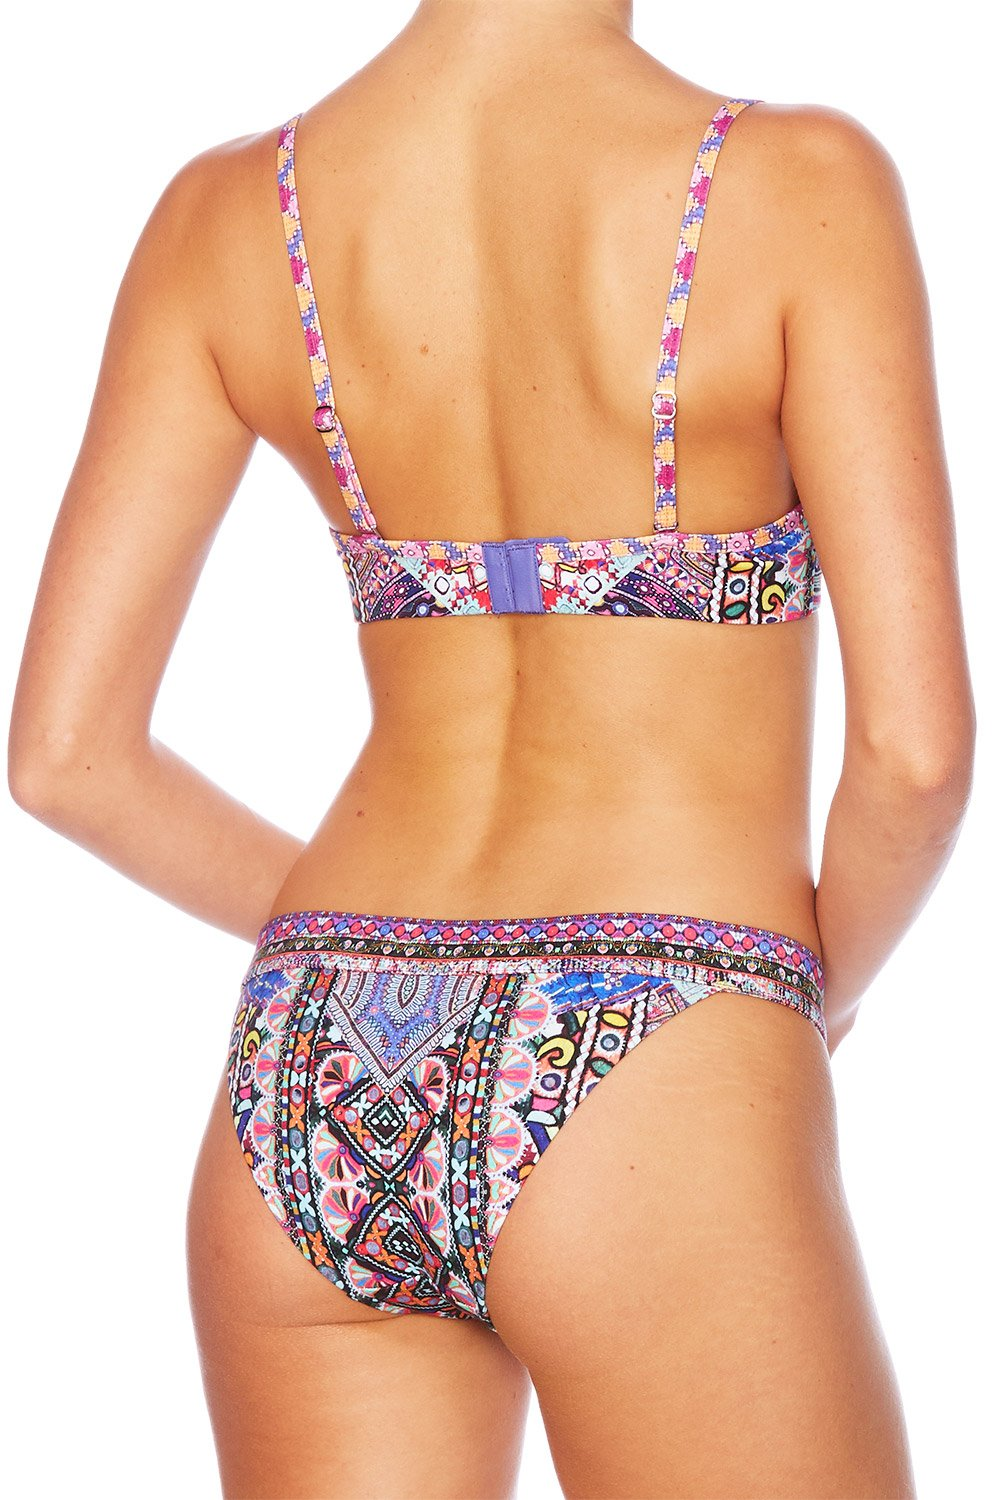 KALBELIA QUEEN WIDE BAND BRIEF